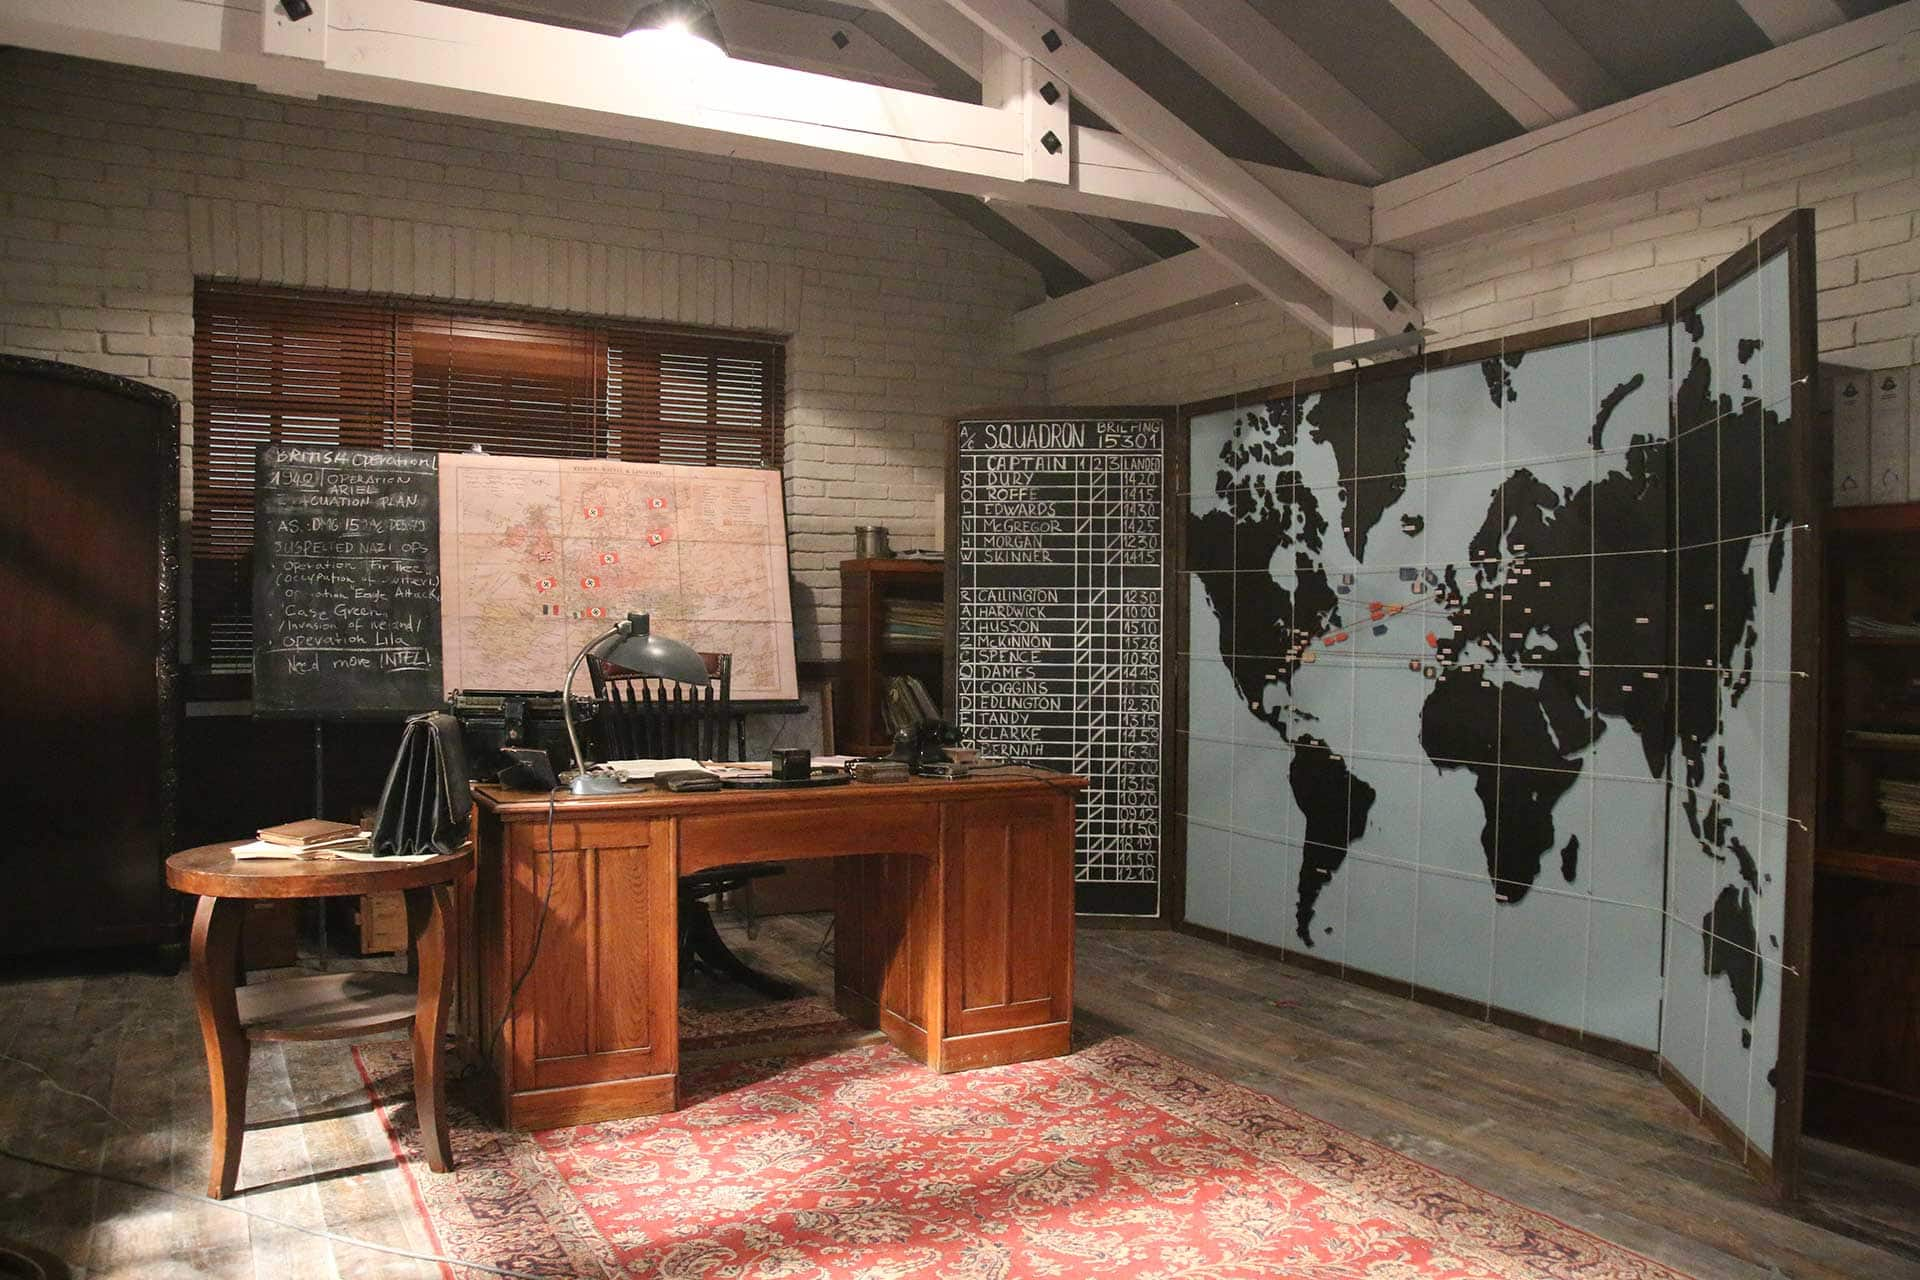 Sinclair's desk. The map behind his desk is an overview of the war in Europe. The large map on the right is an overview of the various teams deployed around the world.